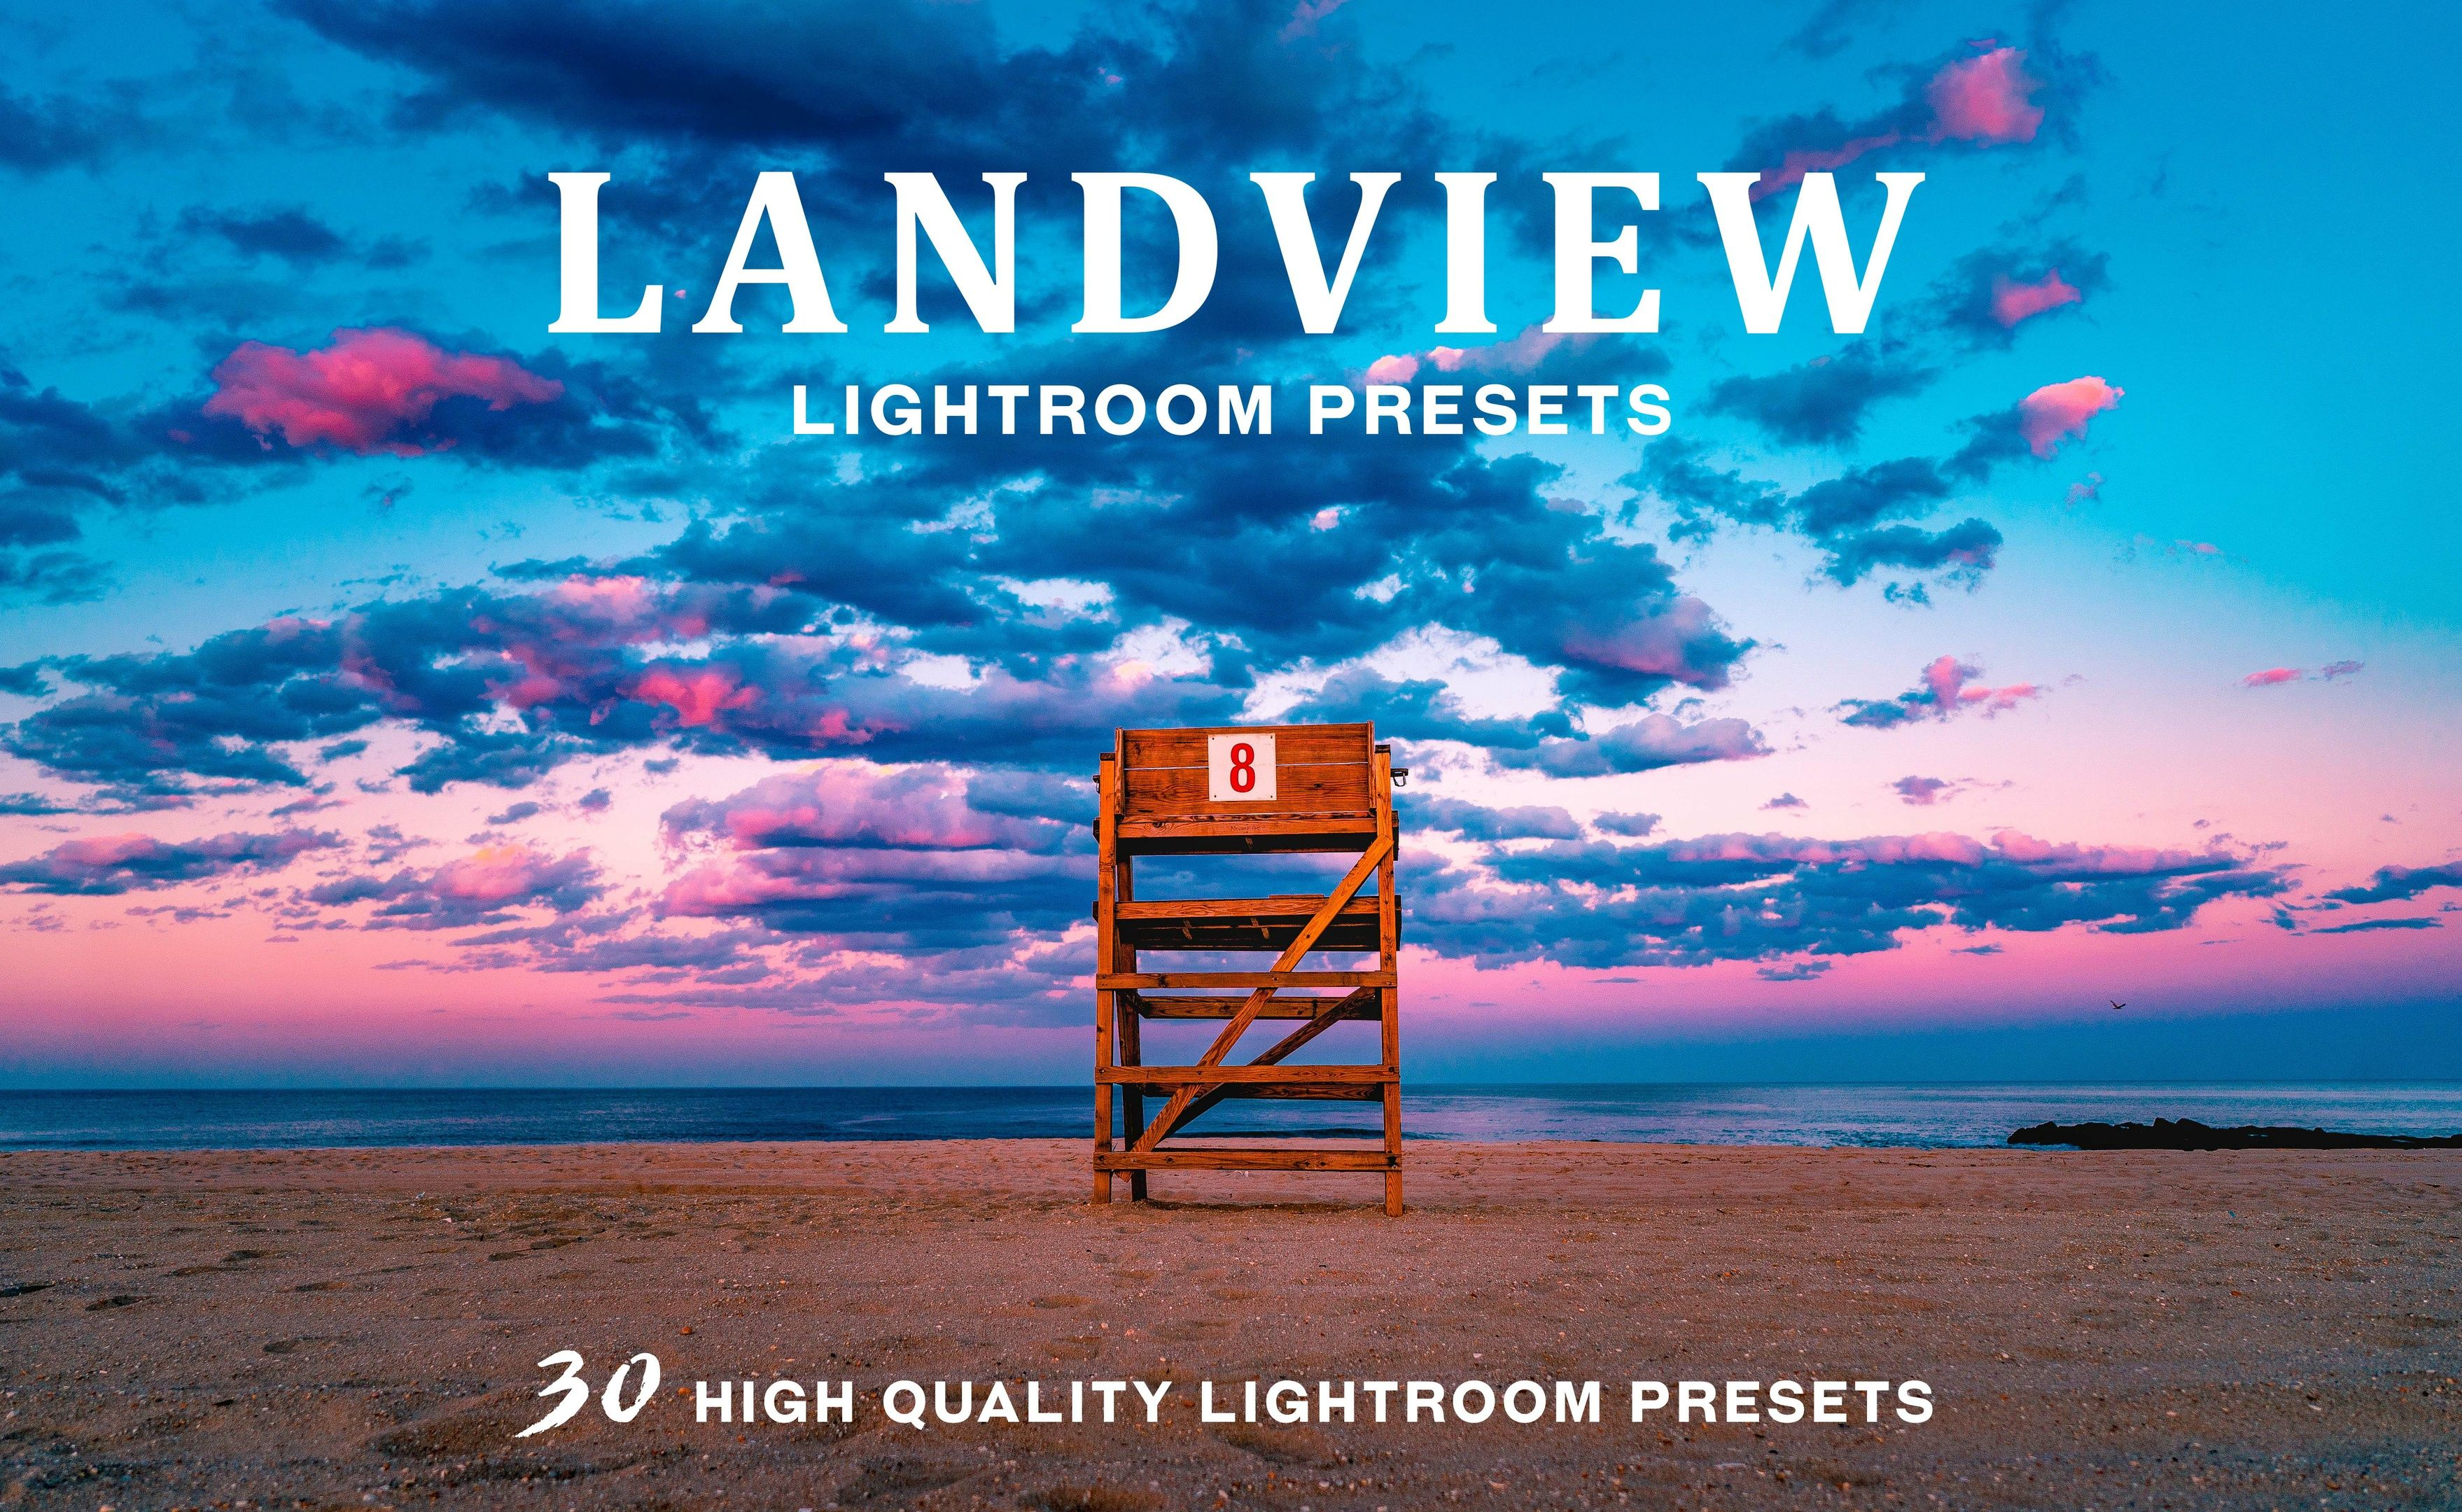 Landview Lightroom Presets | Lightroom Presets by sellfy